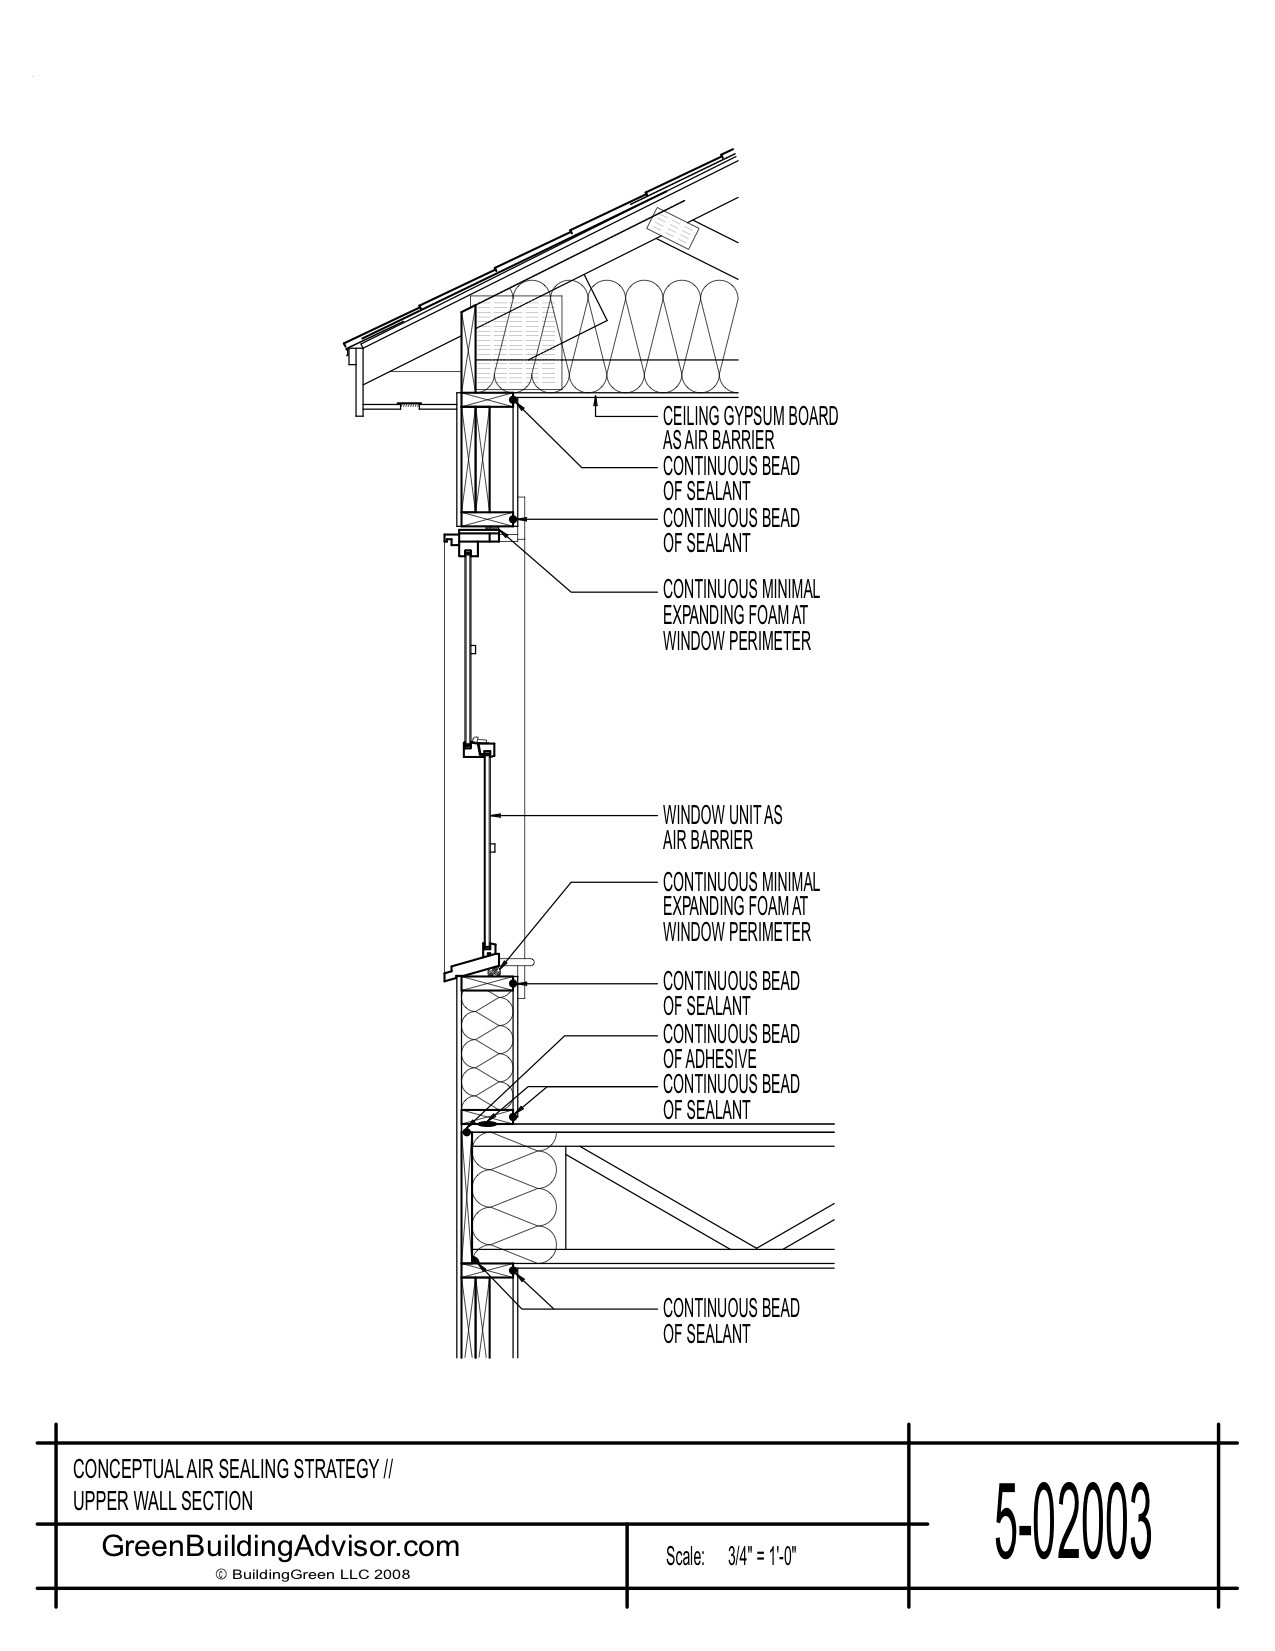 The air barrier is continuous across several components of the lower section of wall, including the foundation, rim joist, bottom plate, wall, window, and header